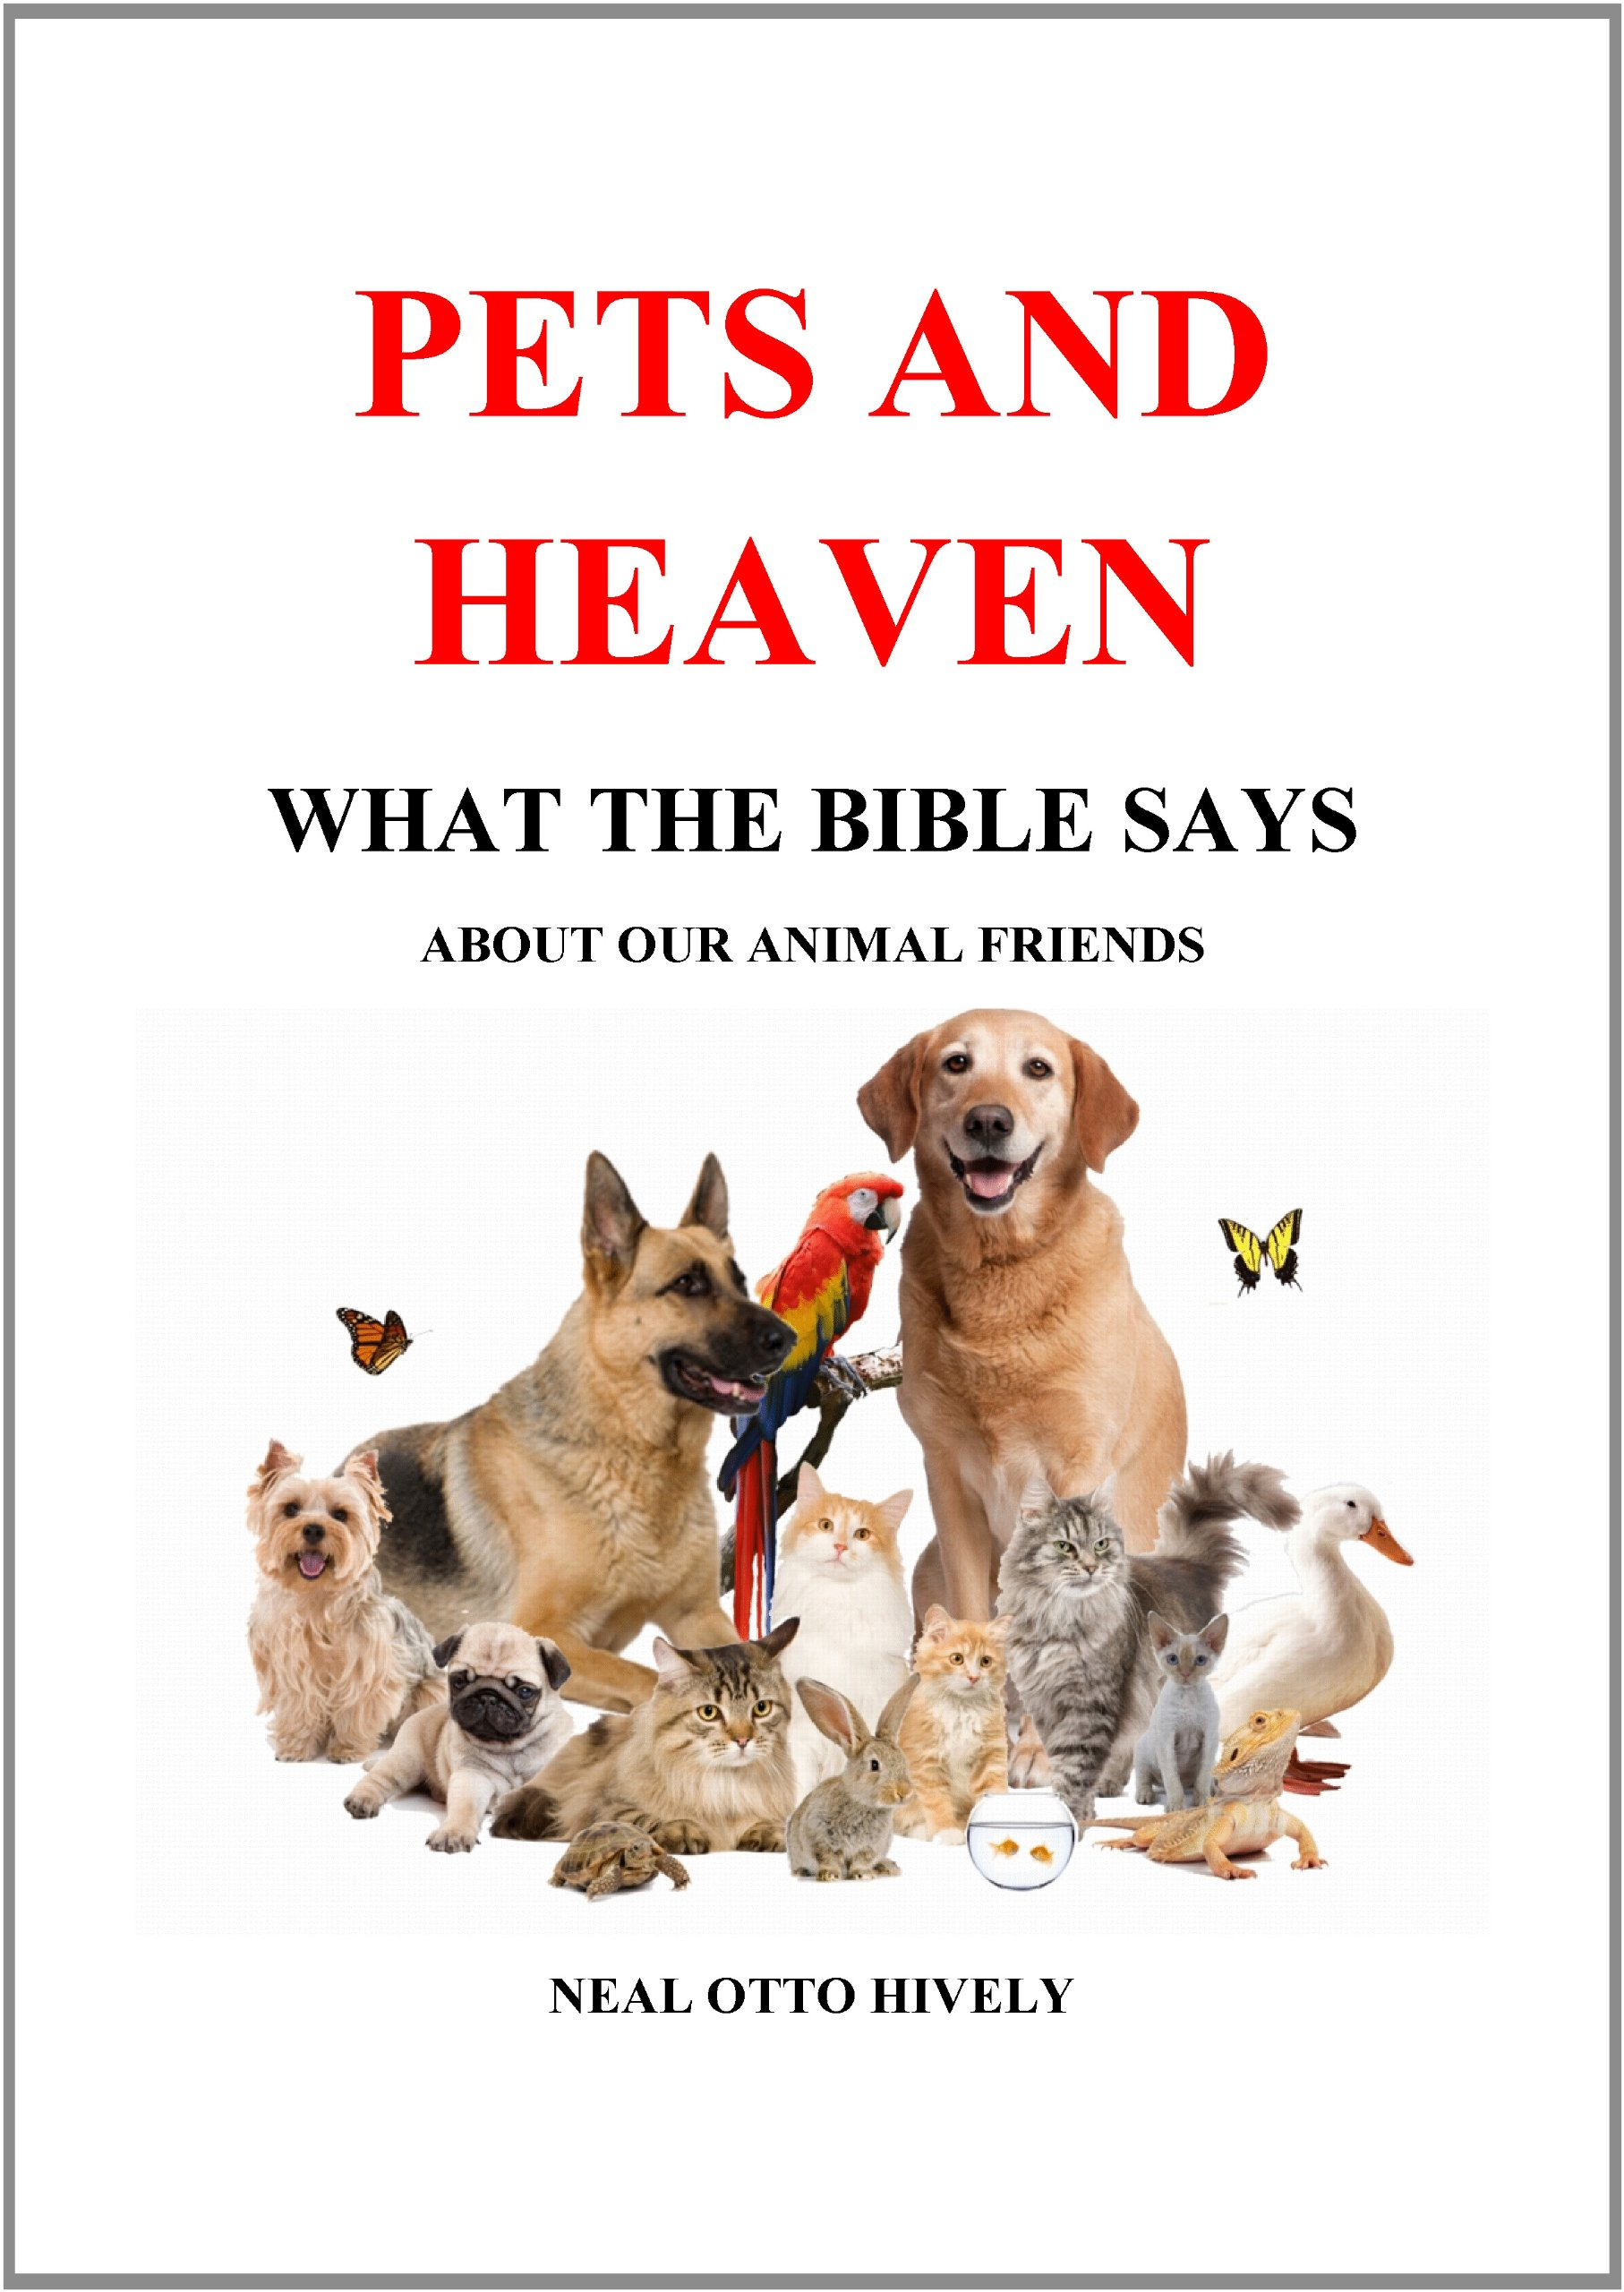 Pets and Heaven - What the Bible Says About Our Animal Friends: Neal O.  Hively: 9780982730805: Amazon.com: Books